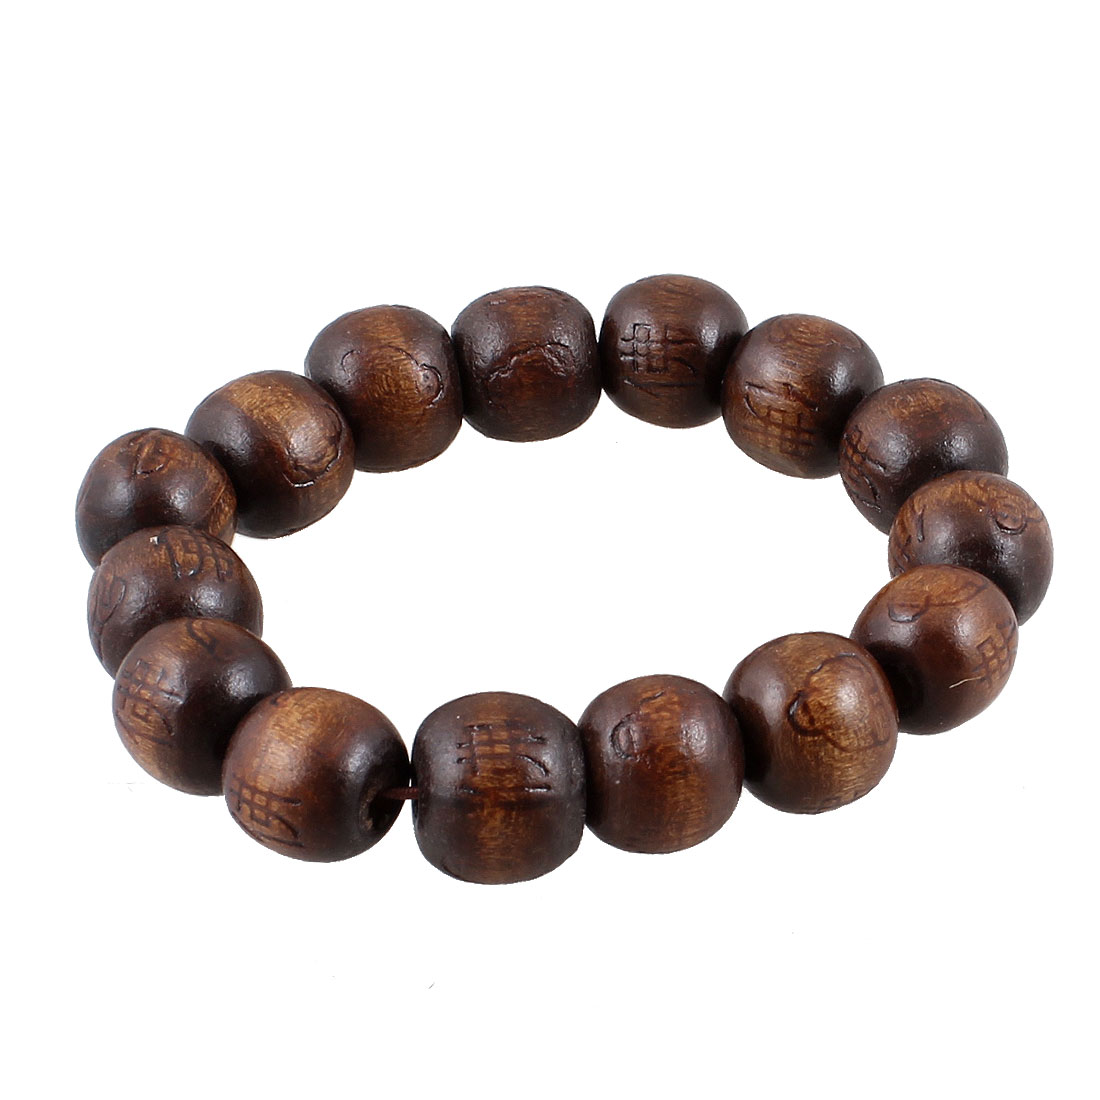 Carved Buddha Character 15 Round Beads Elastic Wrist Bracelet Brown